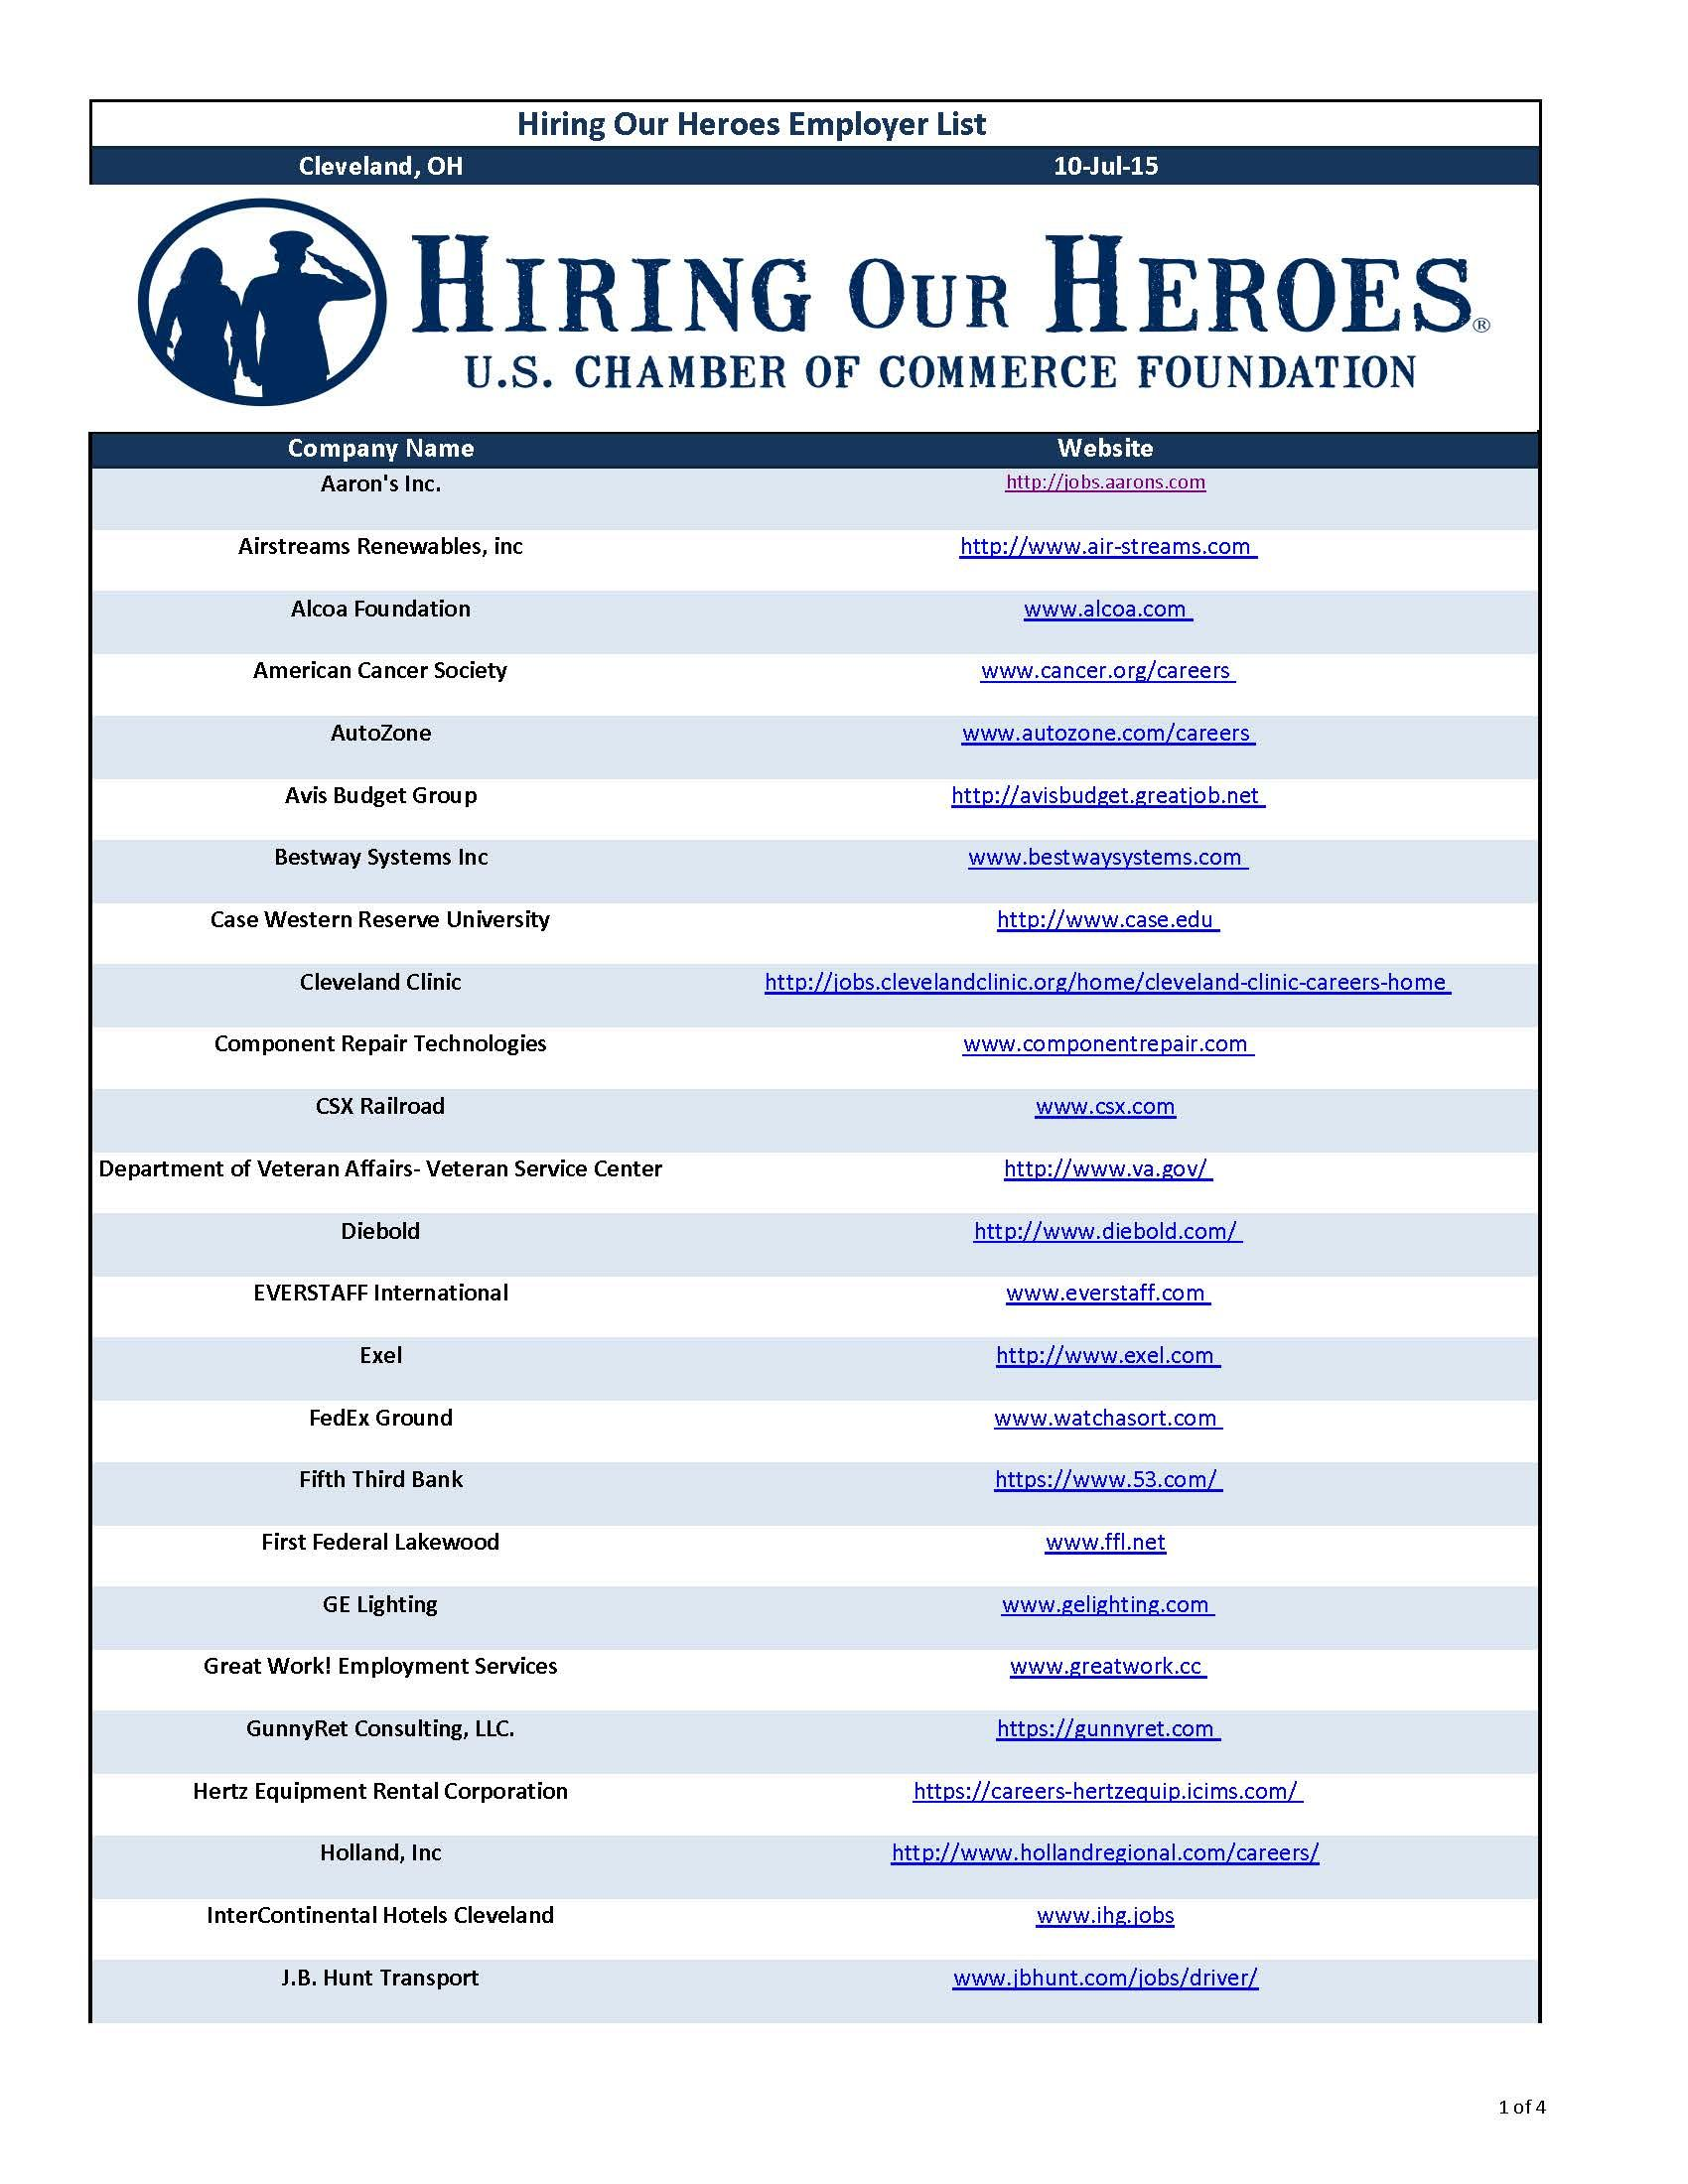 Resume Translation Hiring Our Heroes #hiringfair July 10 In #clevelanda Workshop